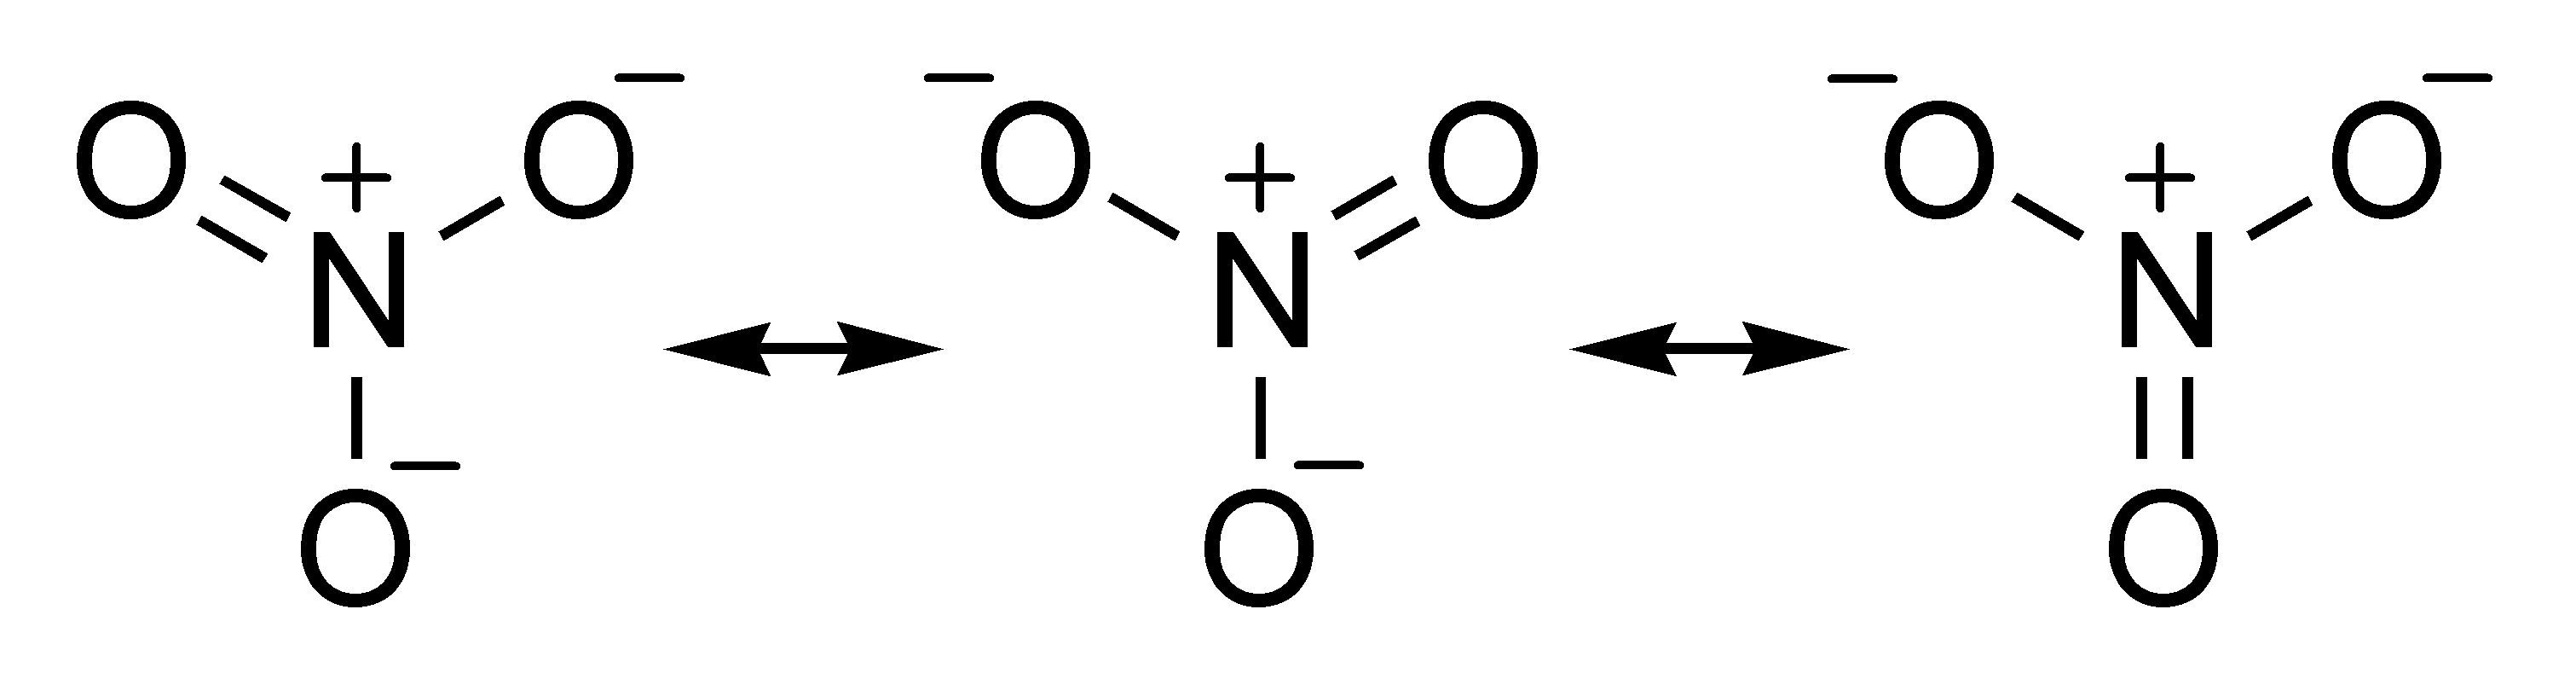 No3 Resonance Structures